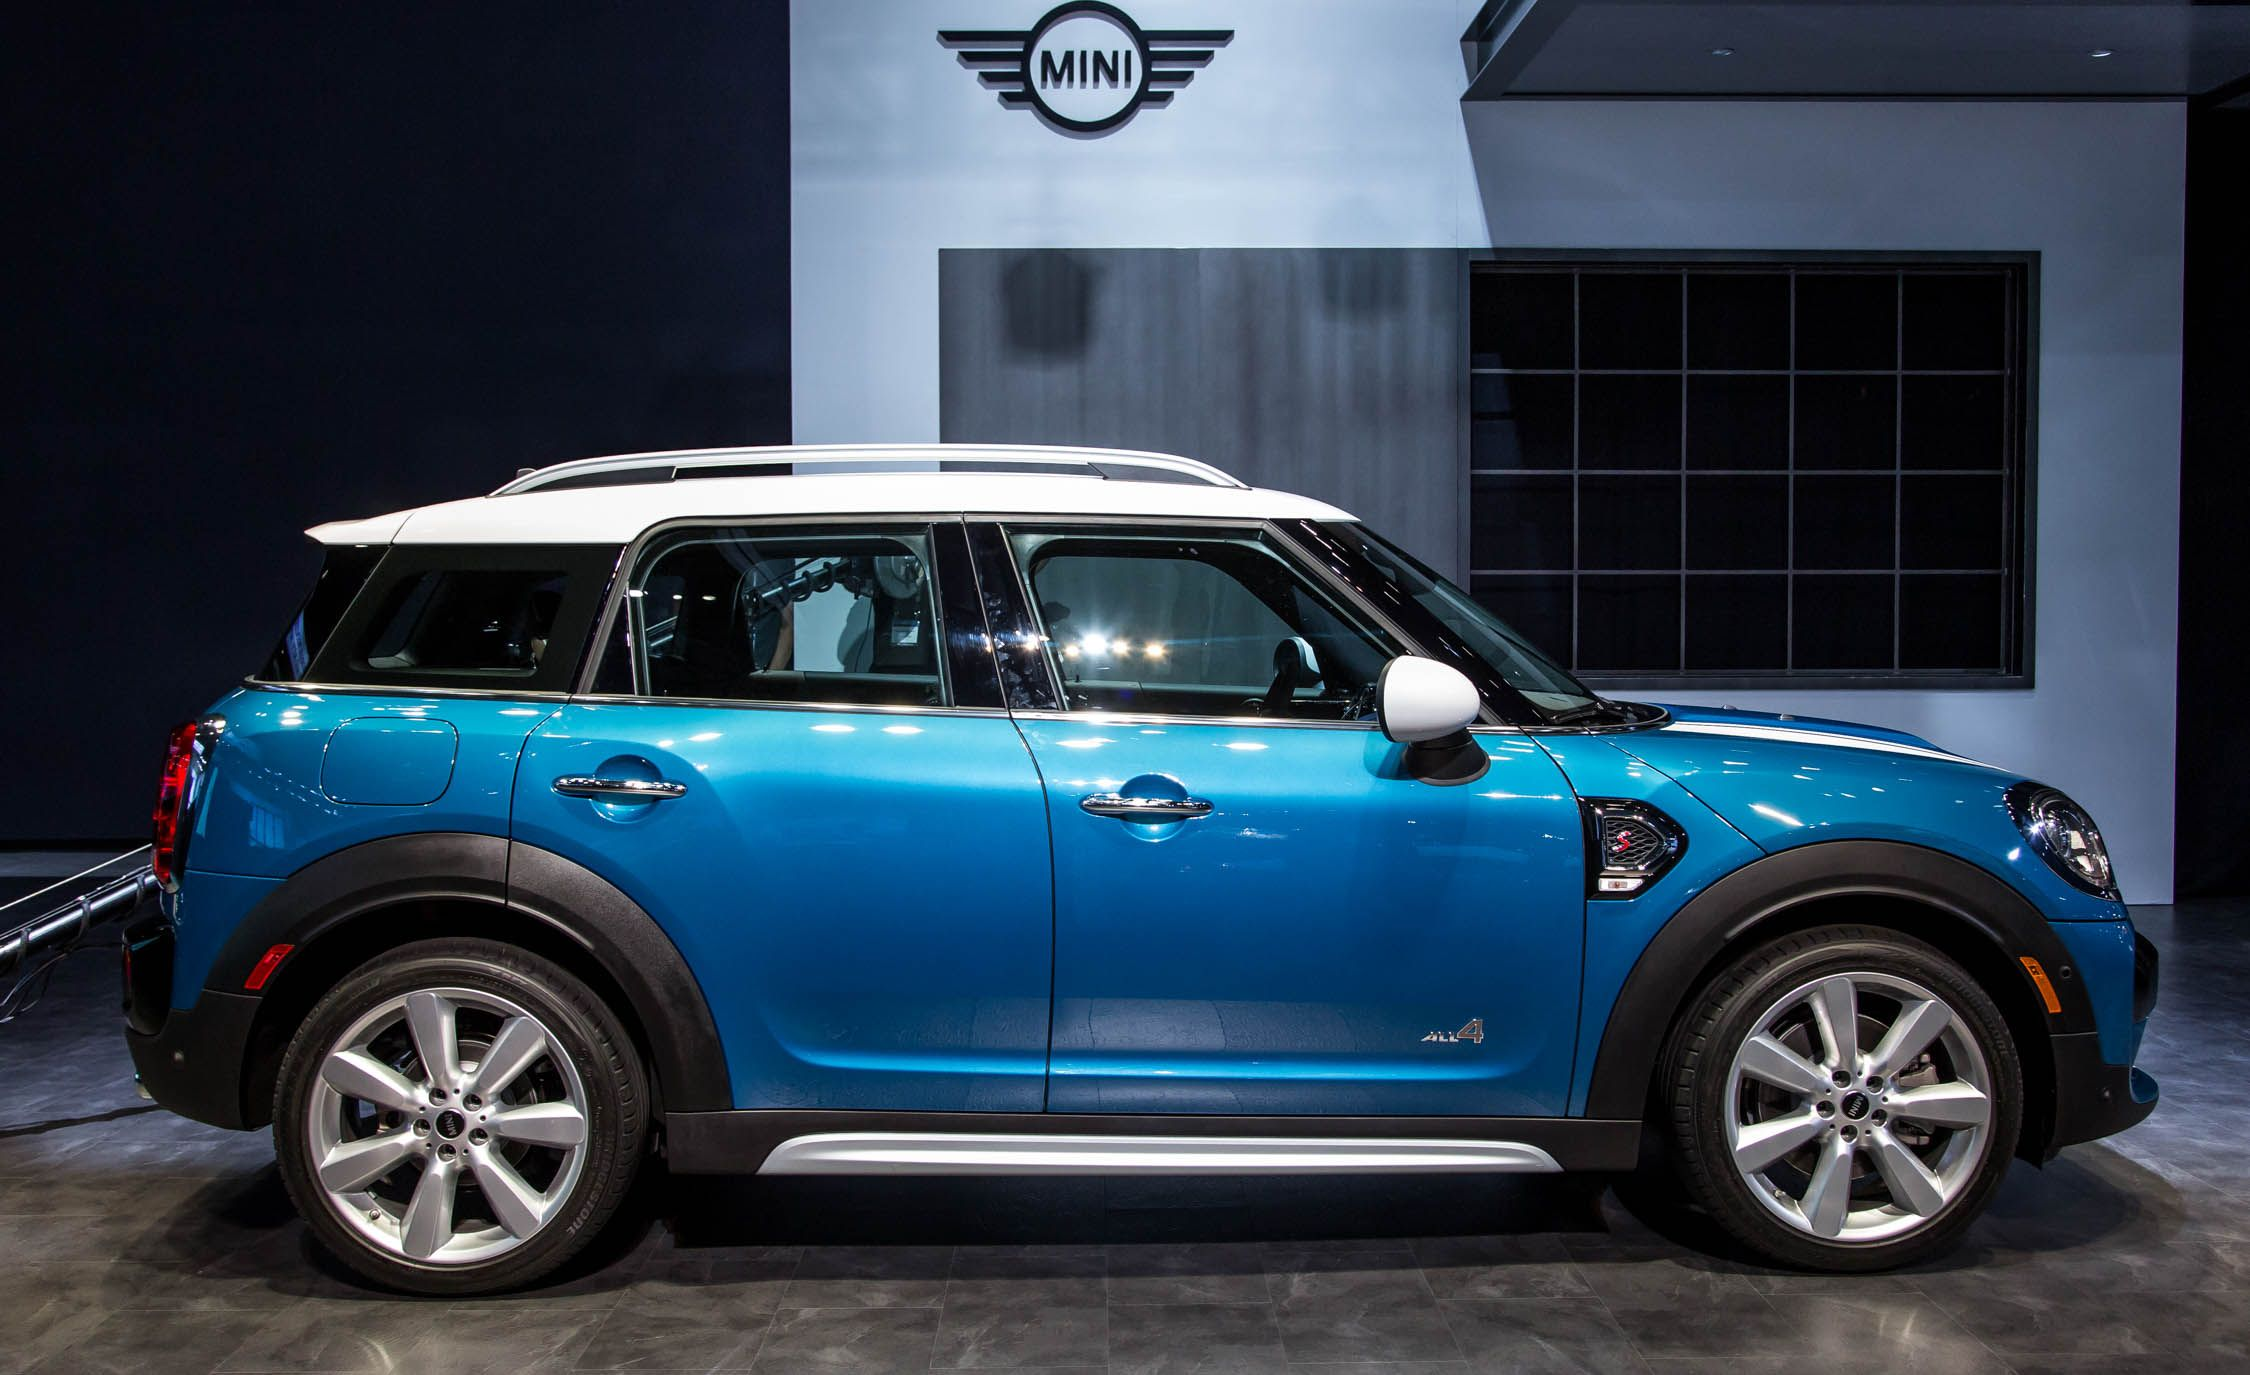 2019 mini cooper countryman / s reviews | mini cooper countryman / s